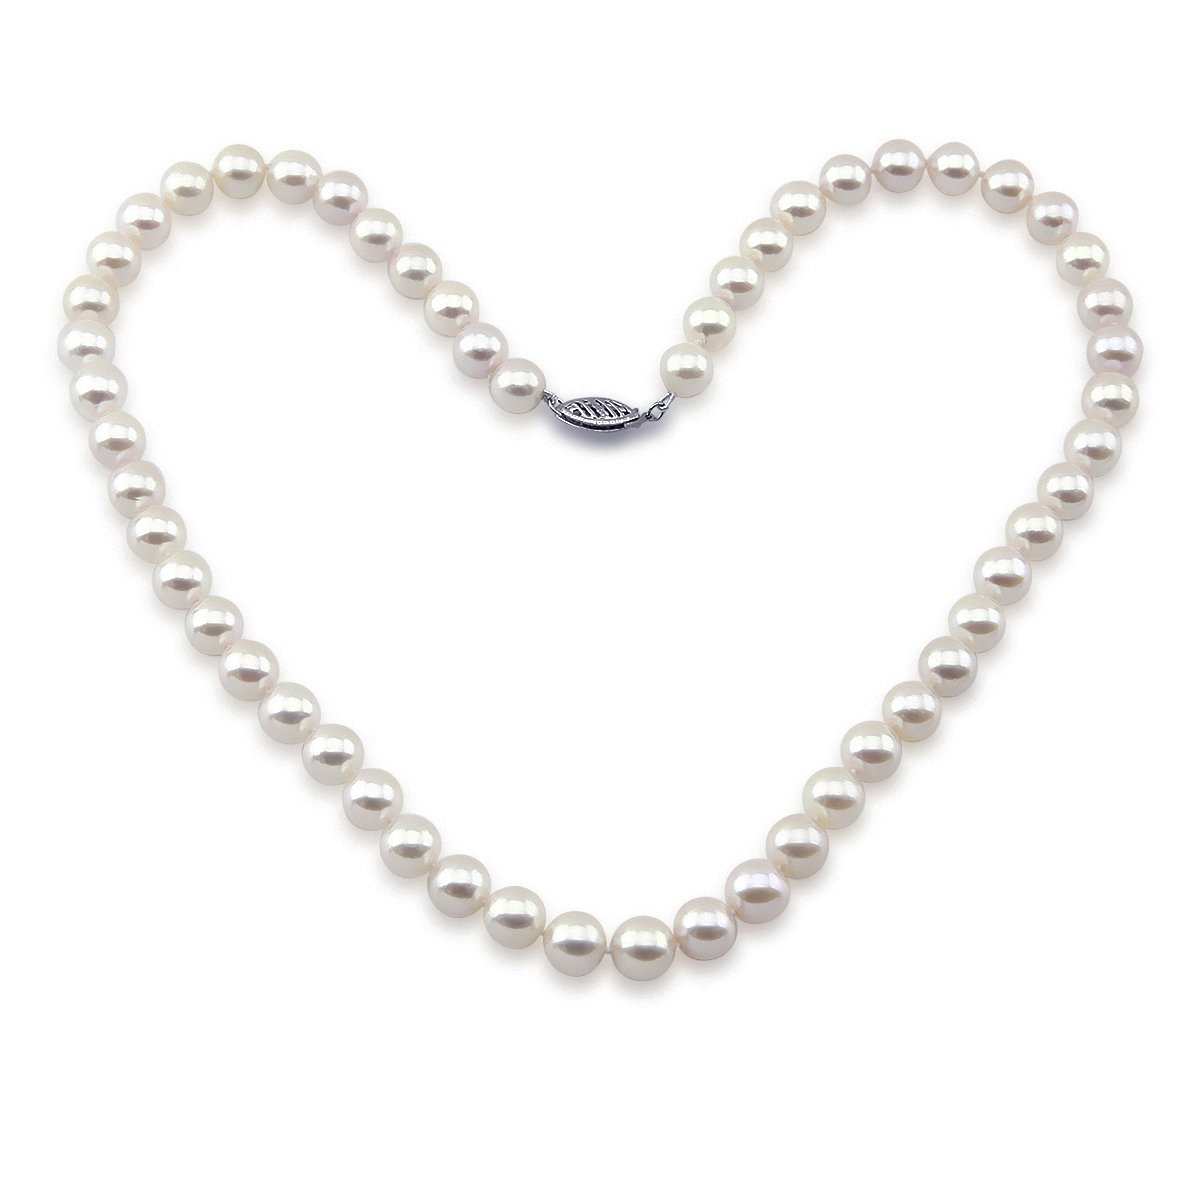 14k White Gold 6.5-7.0mm High Luster White Japanese Akoya Cultured Pearl Necklace 18'', AAA Quality by Akwaya